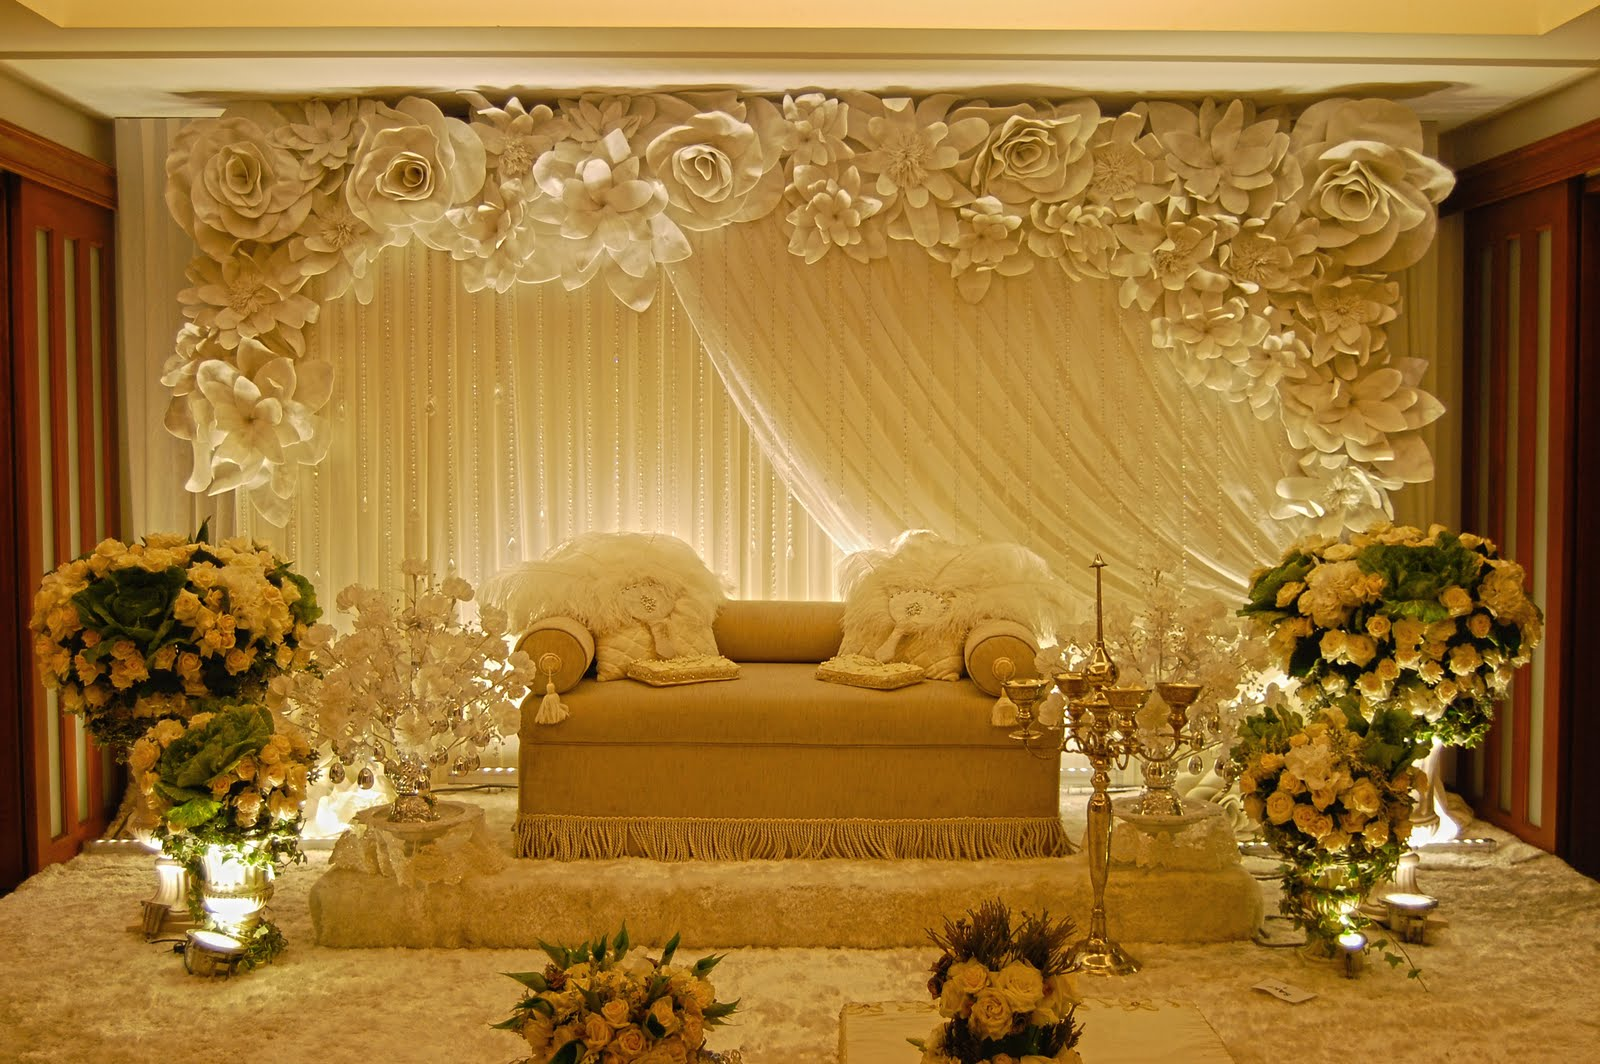 Background Decoration Of 1000 Images About Wedding Backdrop Idea On Pinterest